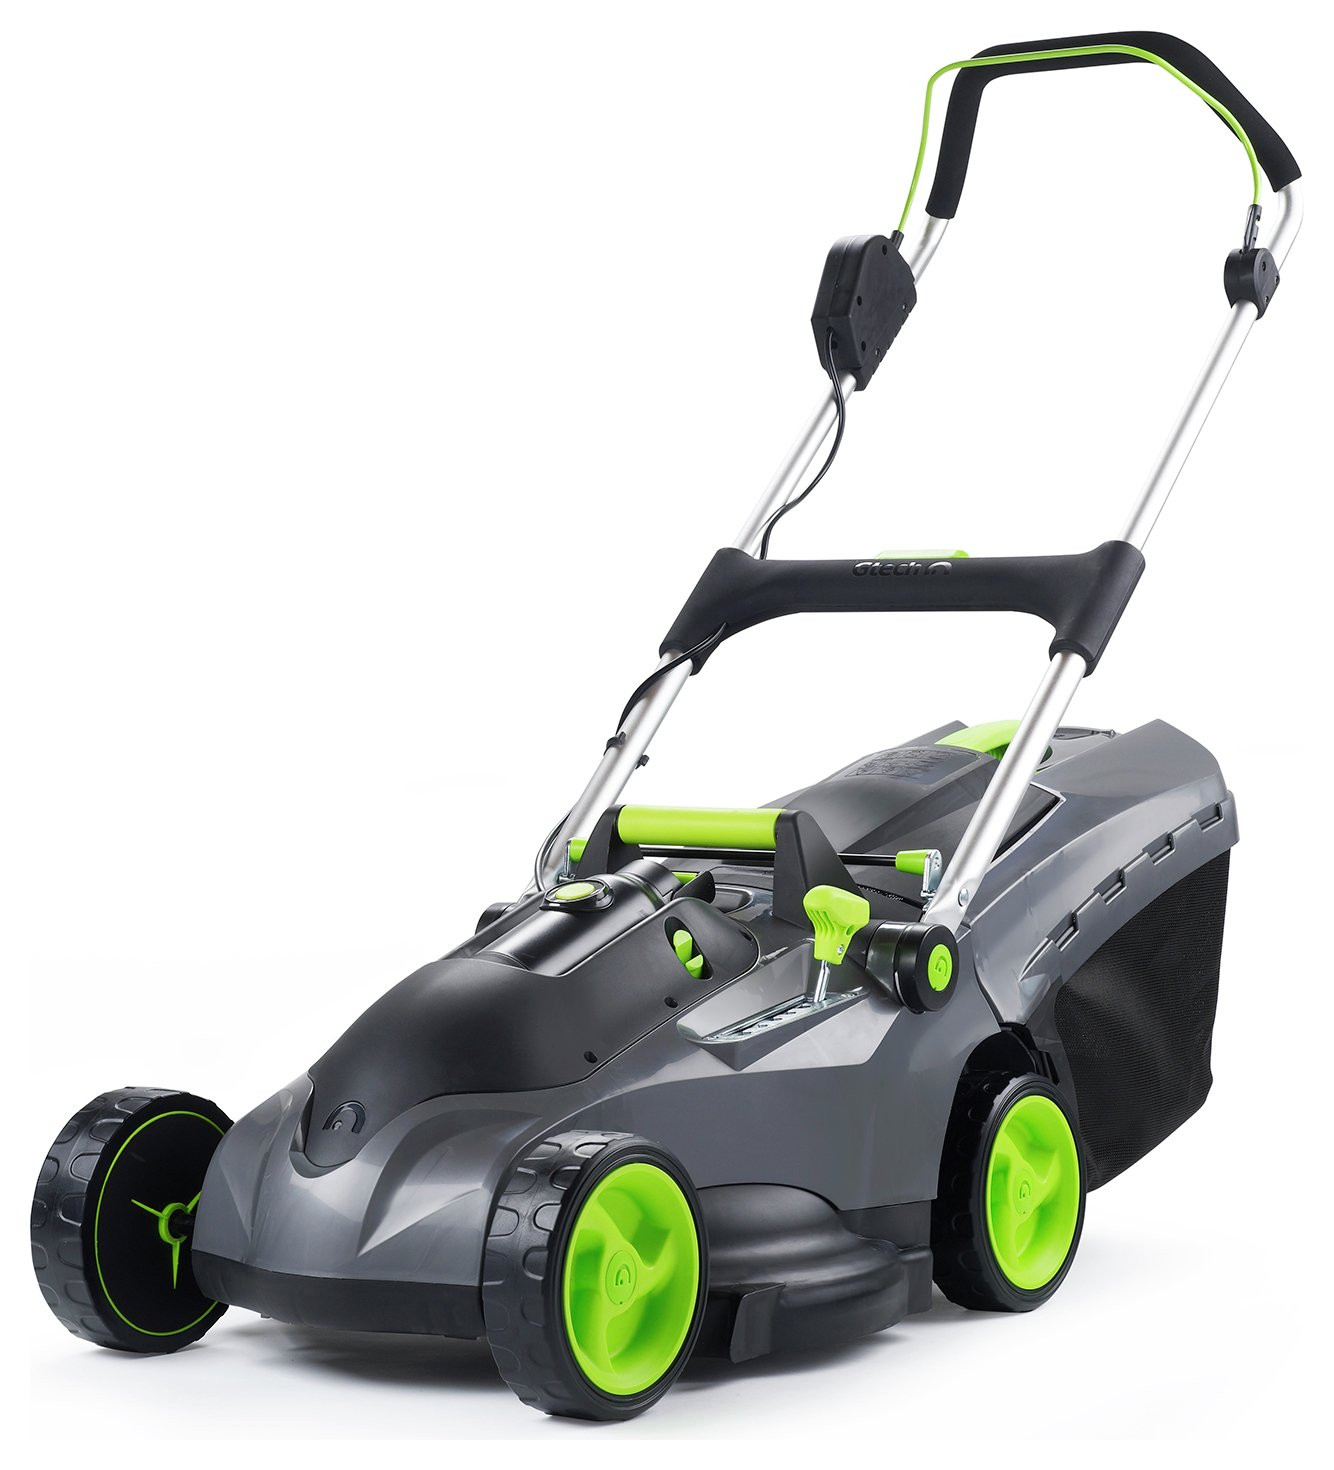 Image of Gtech 43cm Cordless Rotary Lawnmower - 670W